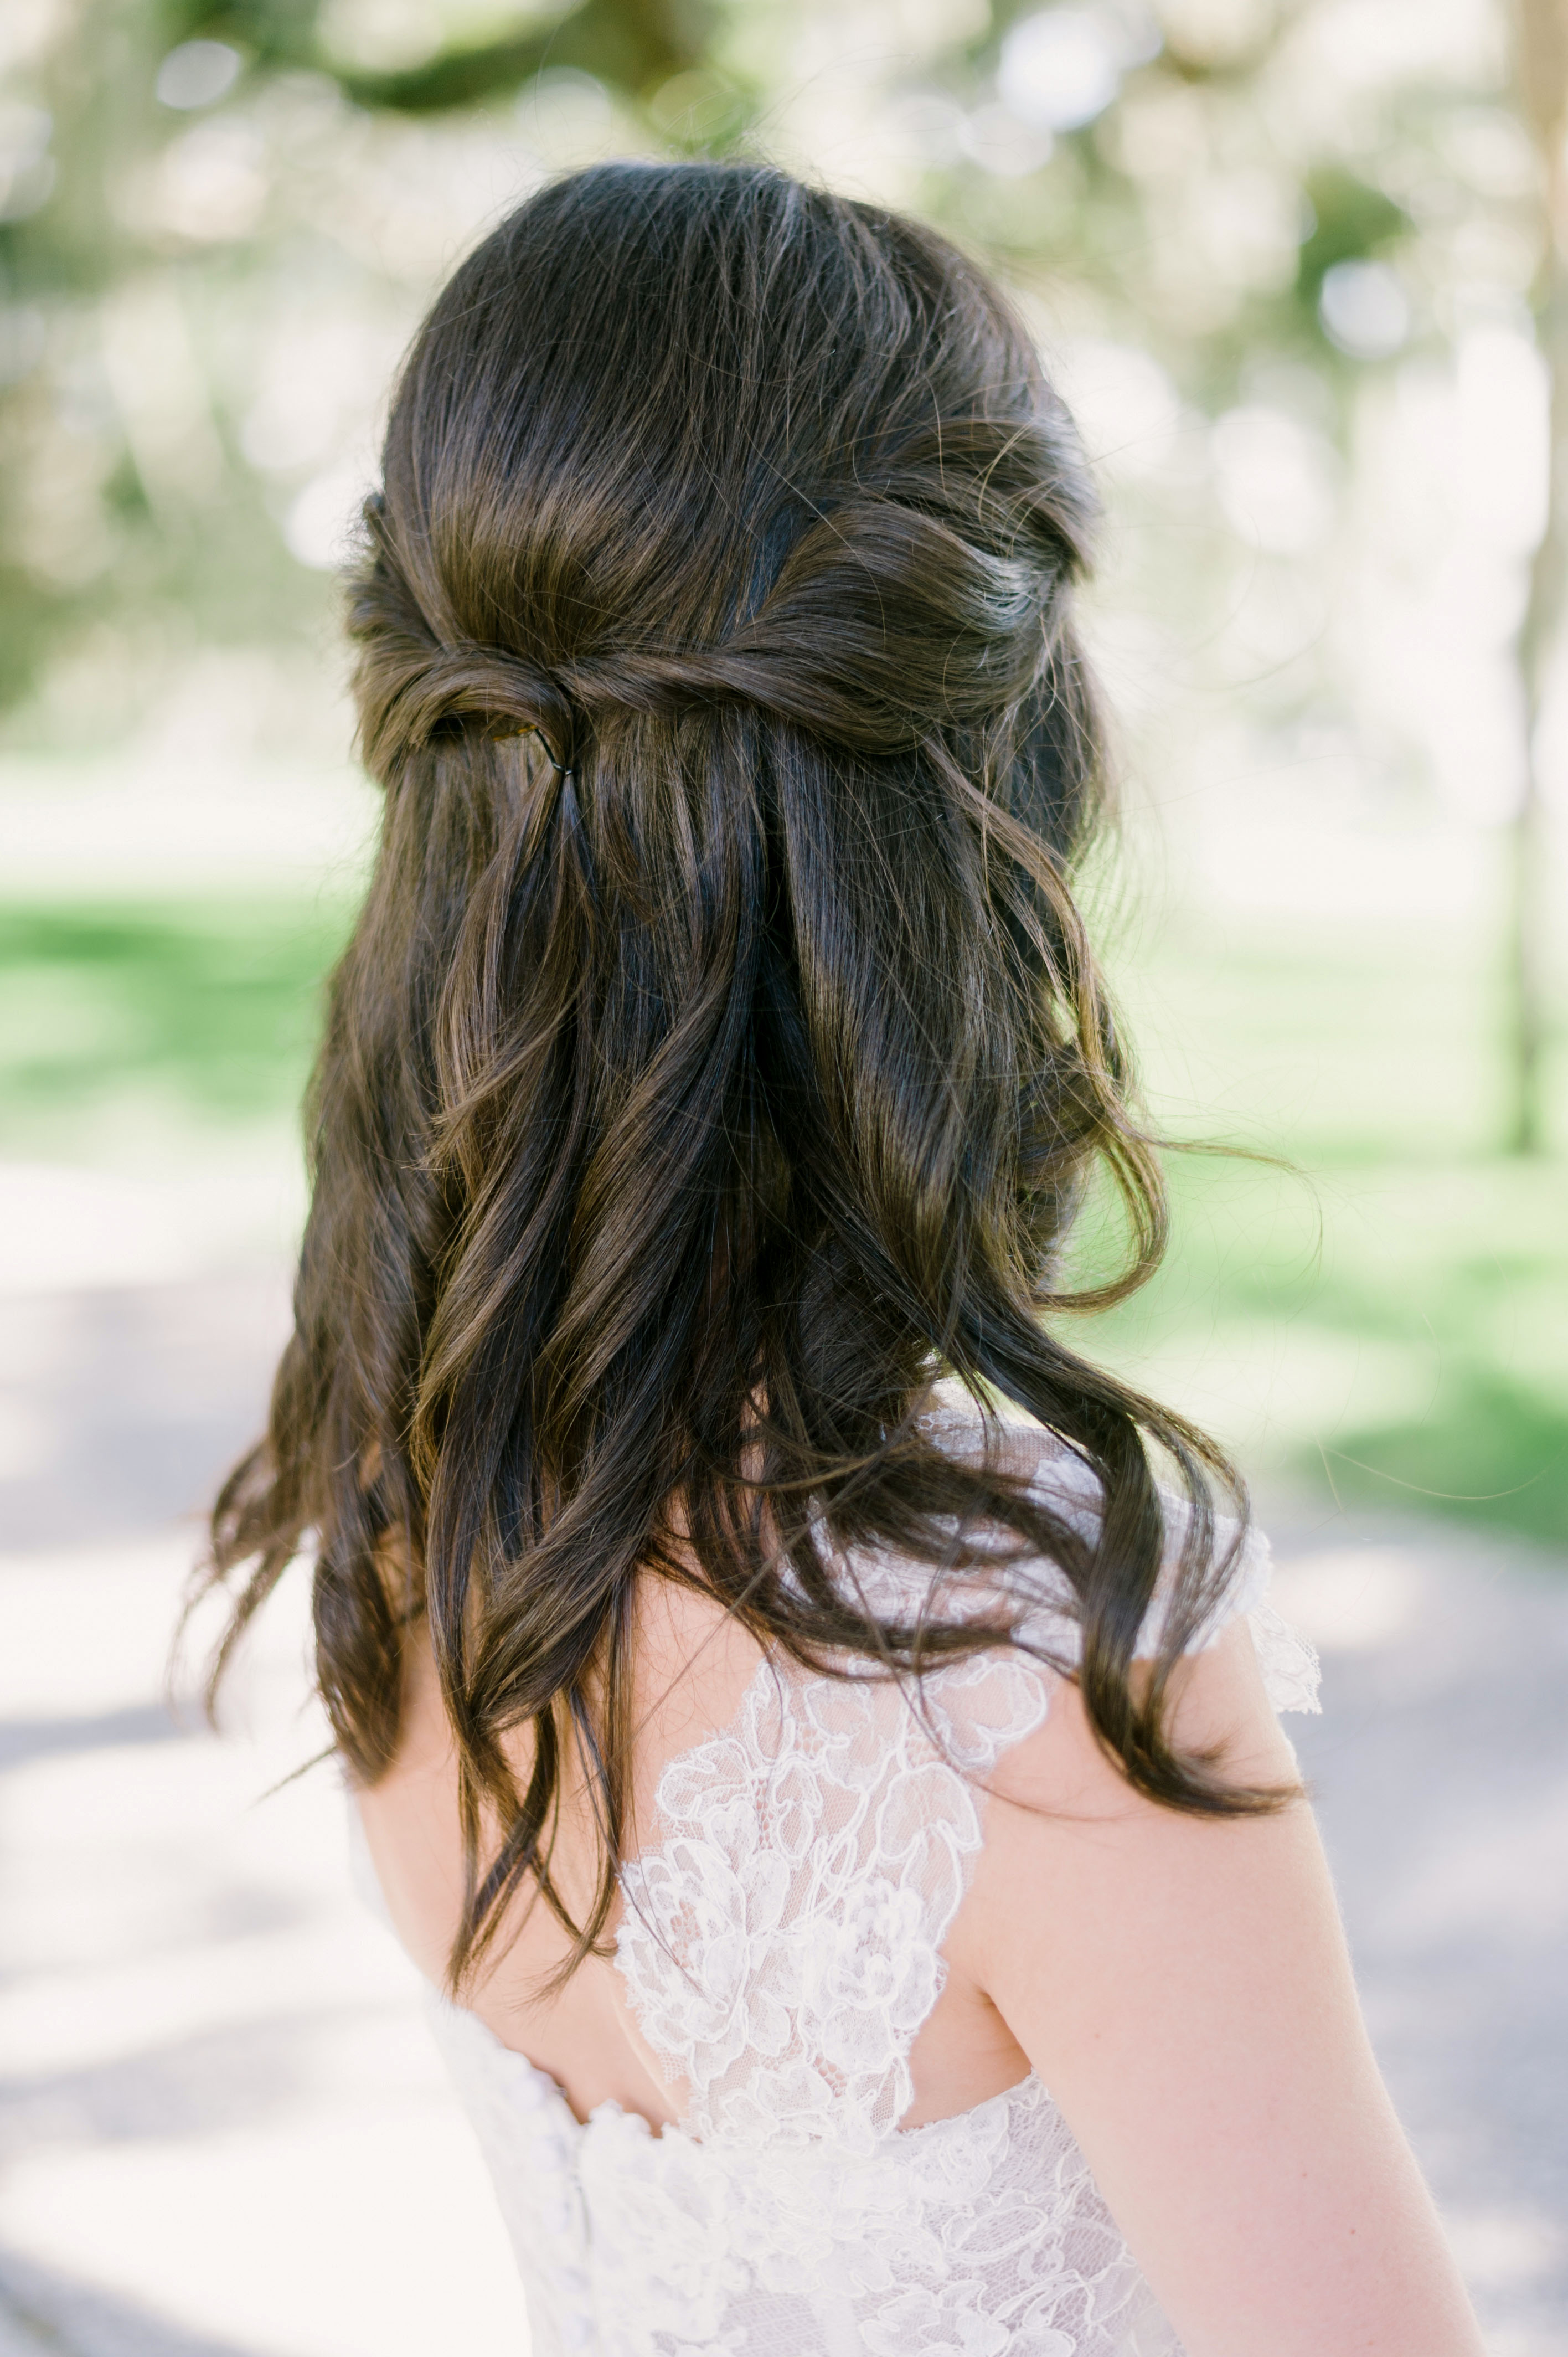 55 Simple Wedding Hairstyles That Prove Less Is More ...